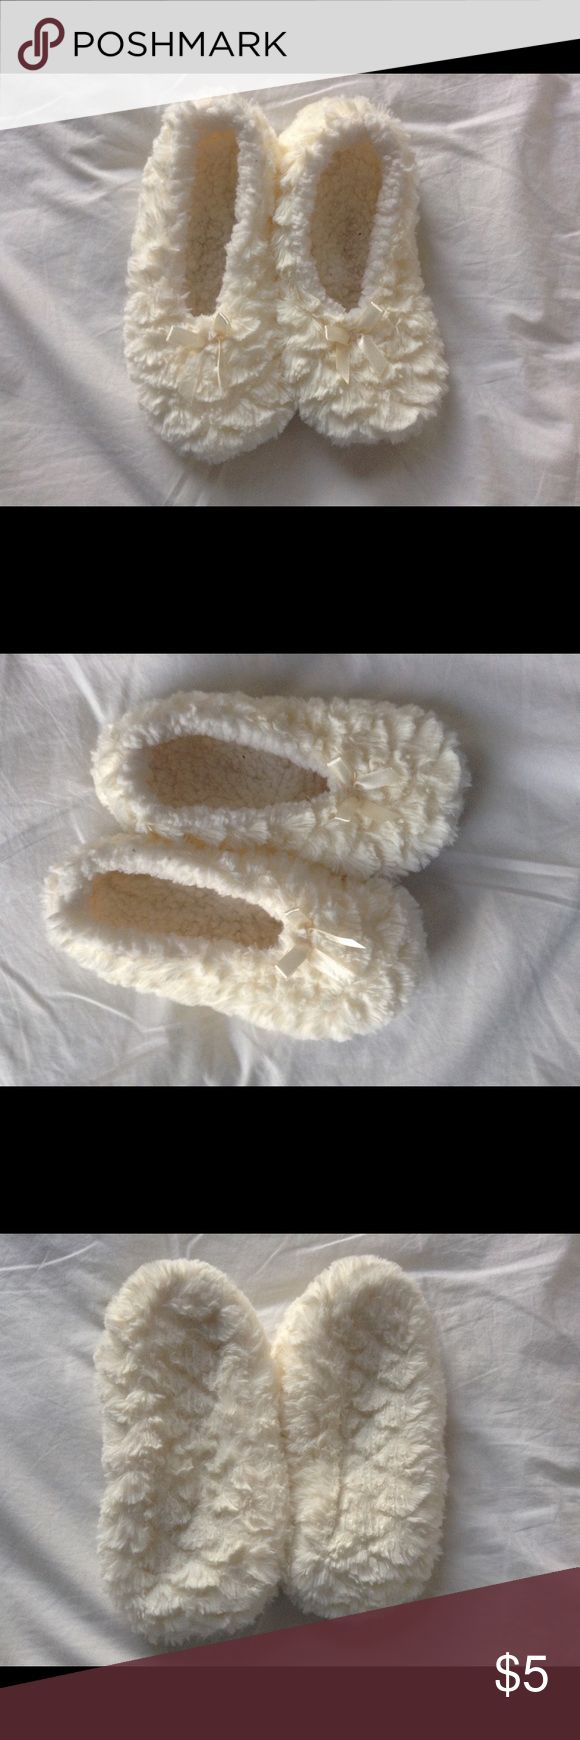 Woman's Slippers/Fuzzy Socks Super comfortable slipper/socks. Worn once but didn't fit & is in perfect condition (white creamy color) Shoes Slippers